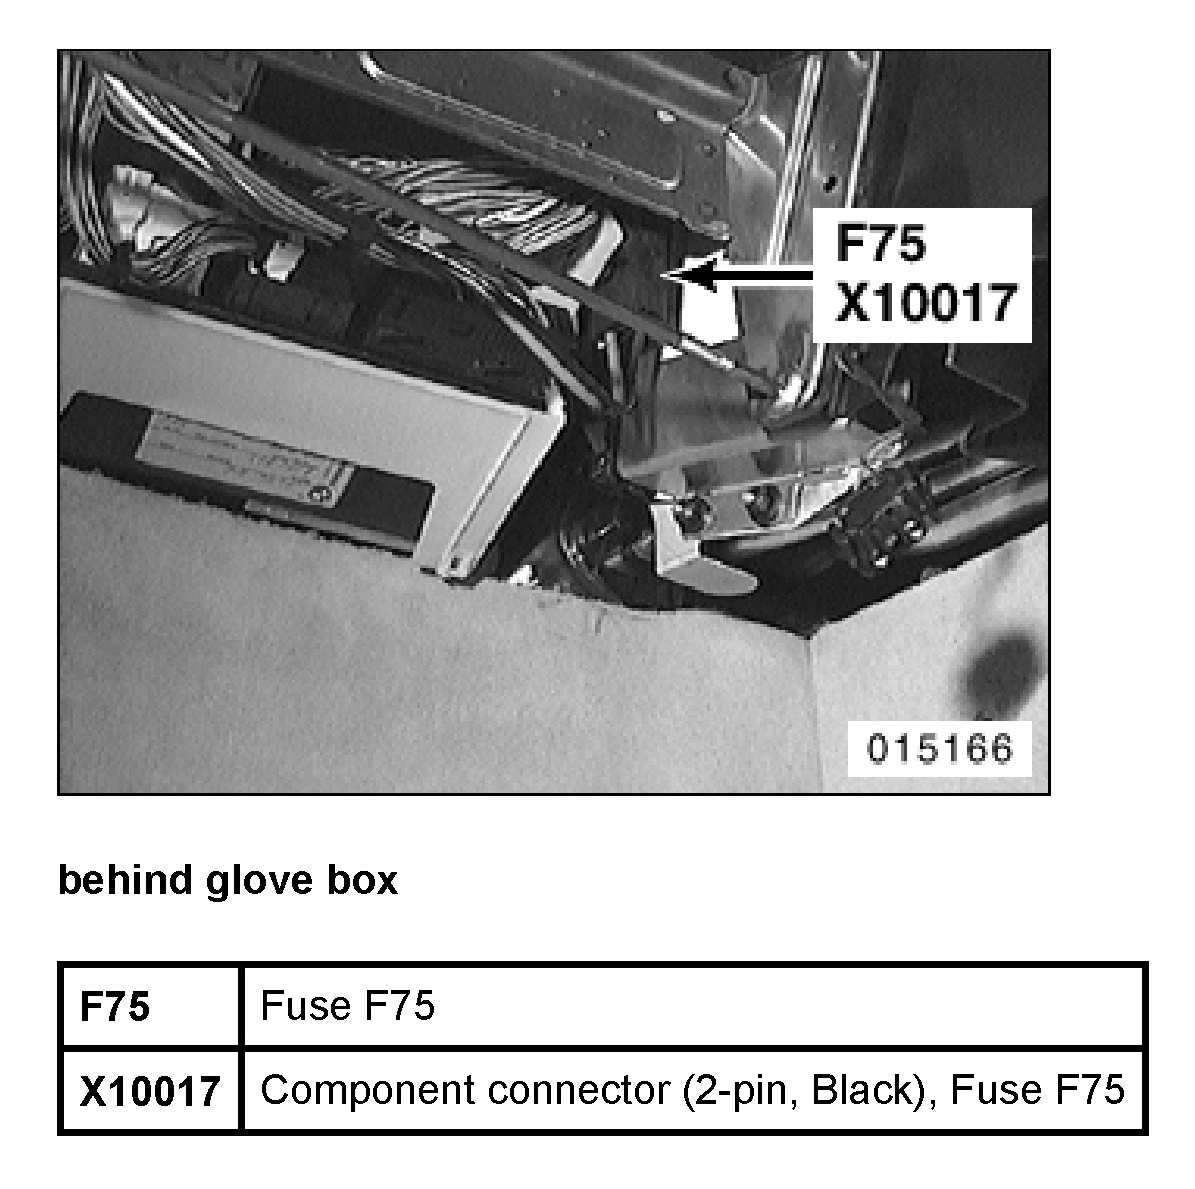 m5 fuse box circuit connection diagram u2022 rh scooplocal co 2006 BMW 325I Fuse Diagram 07 BMW 328I Fuse Diagram